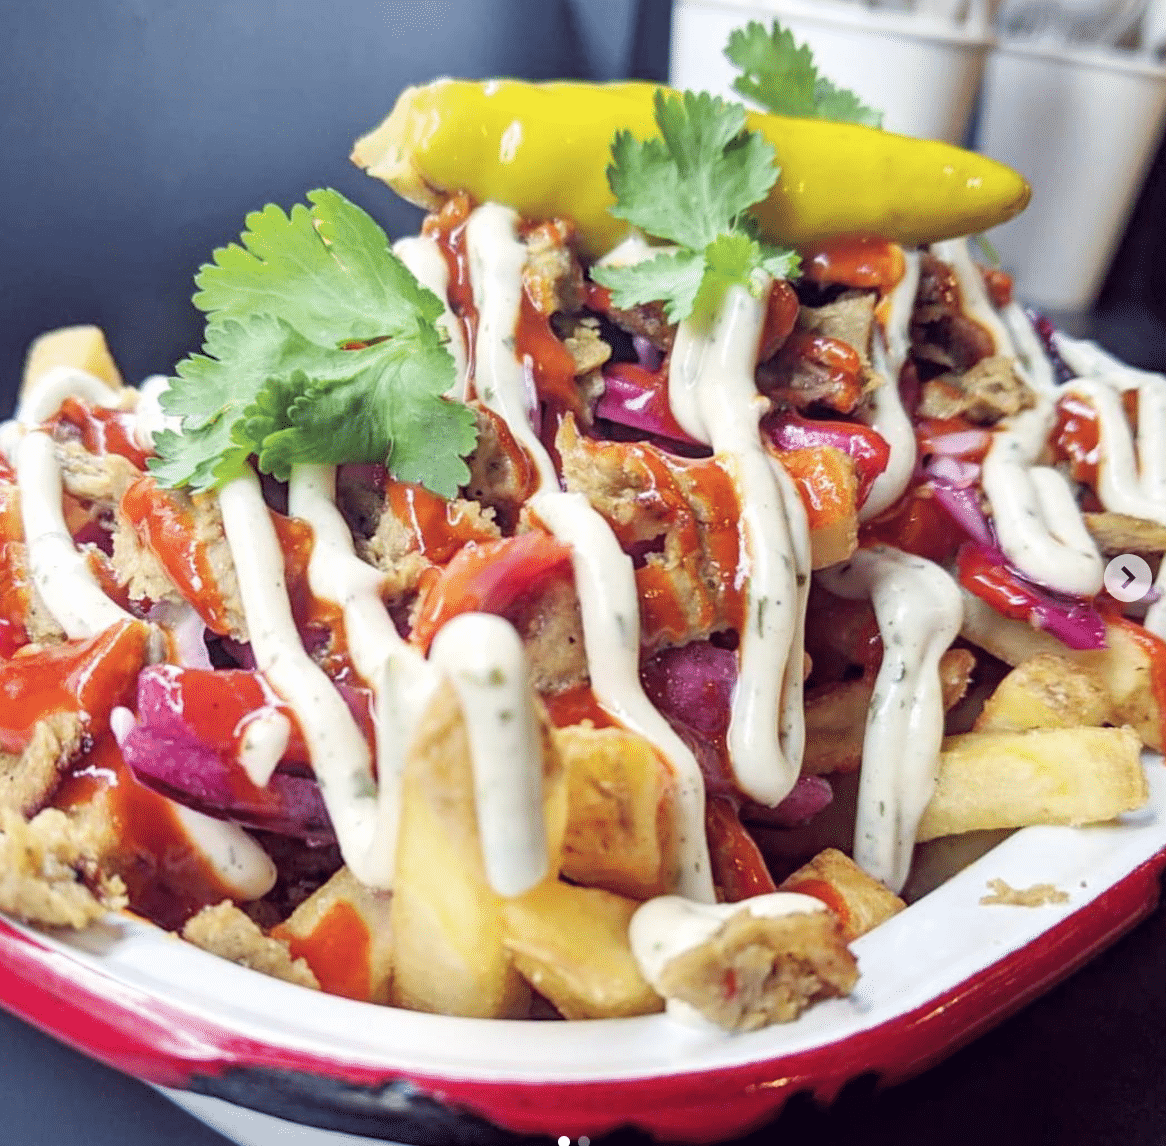 Vegan Kebab Fries in Manchester